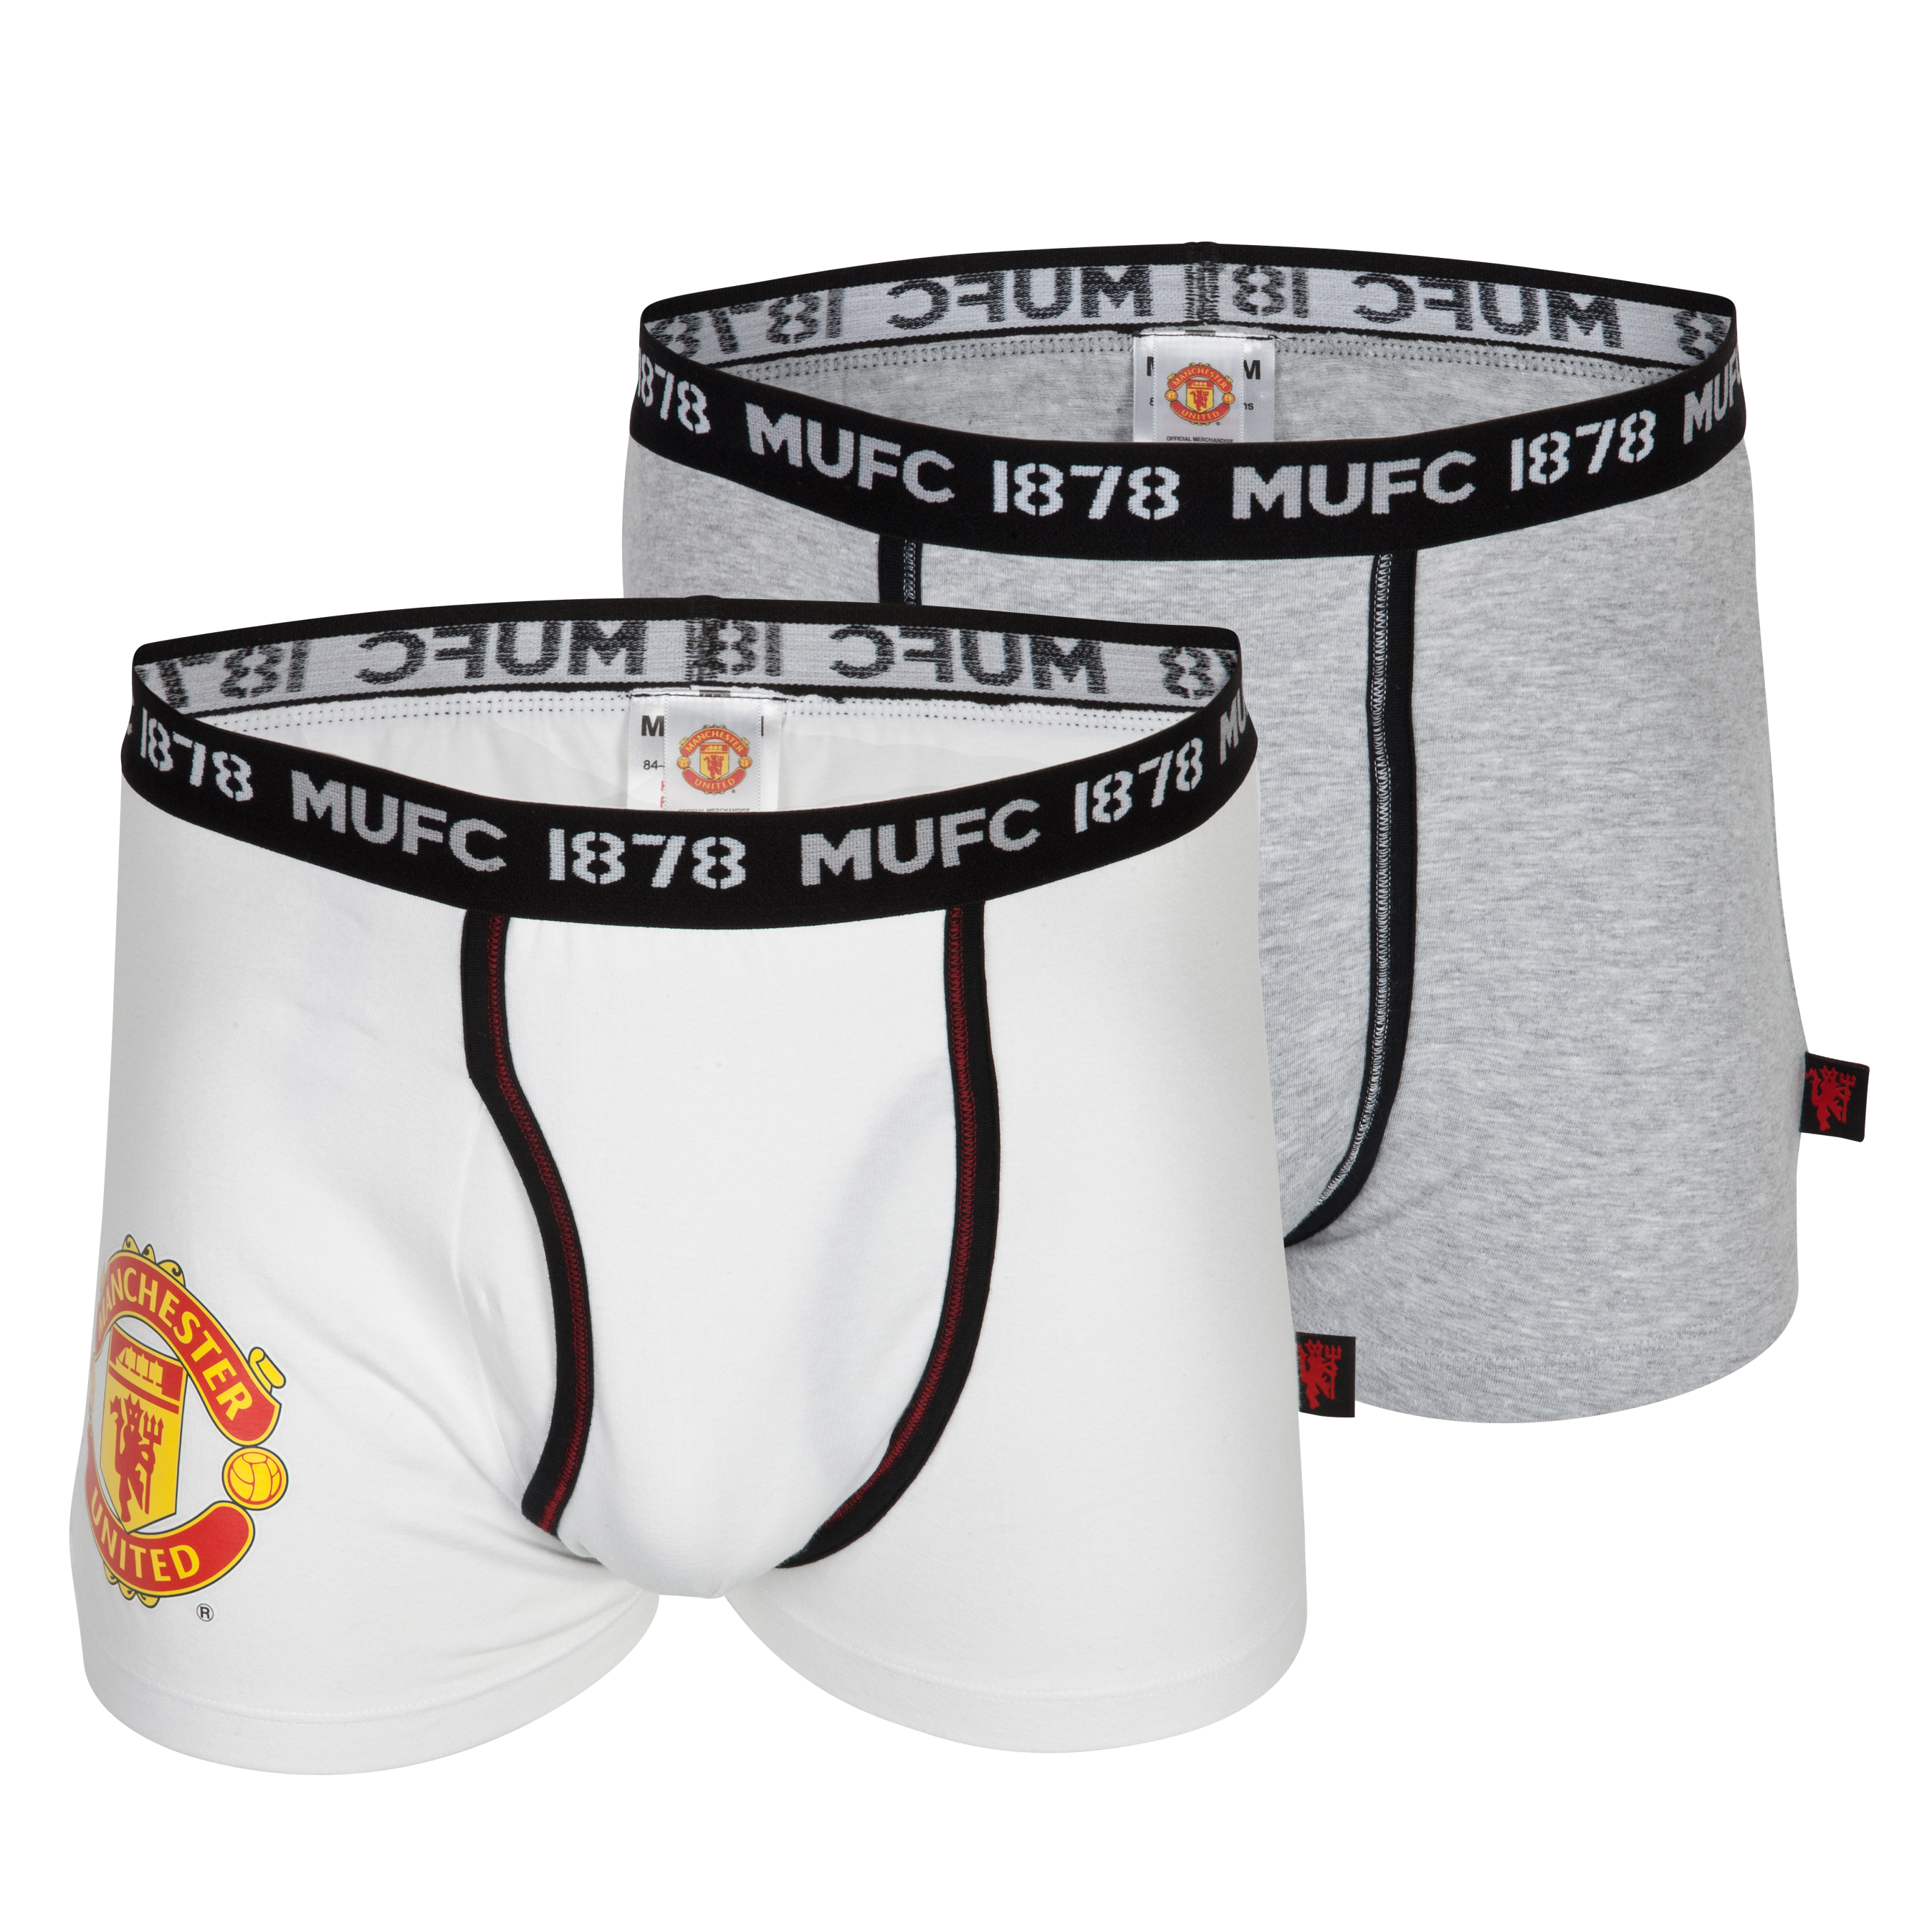 Manchester United 2 Pack Crest Boxer Shorts - Grey Marl/White - Mens